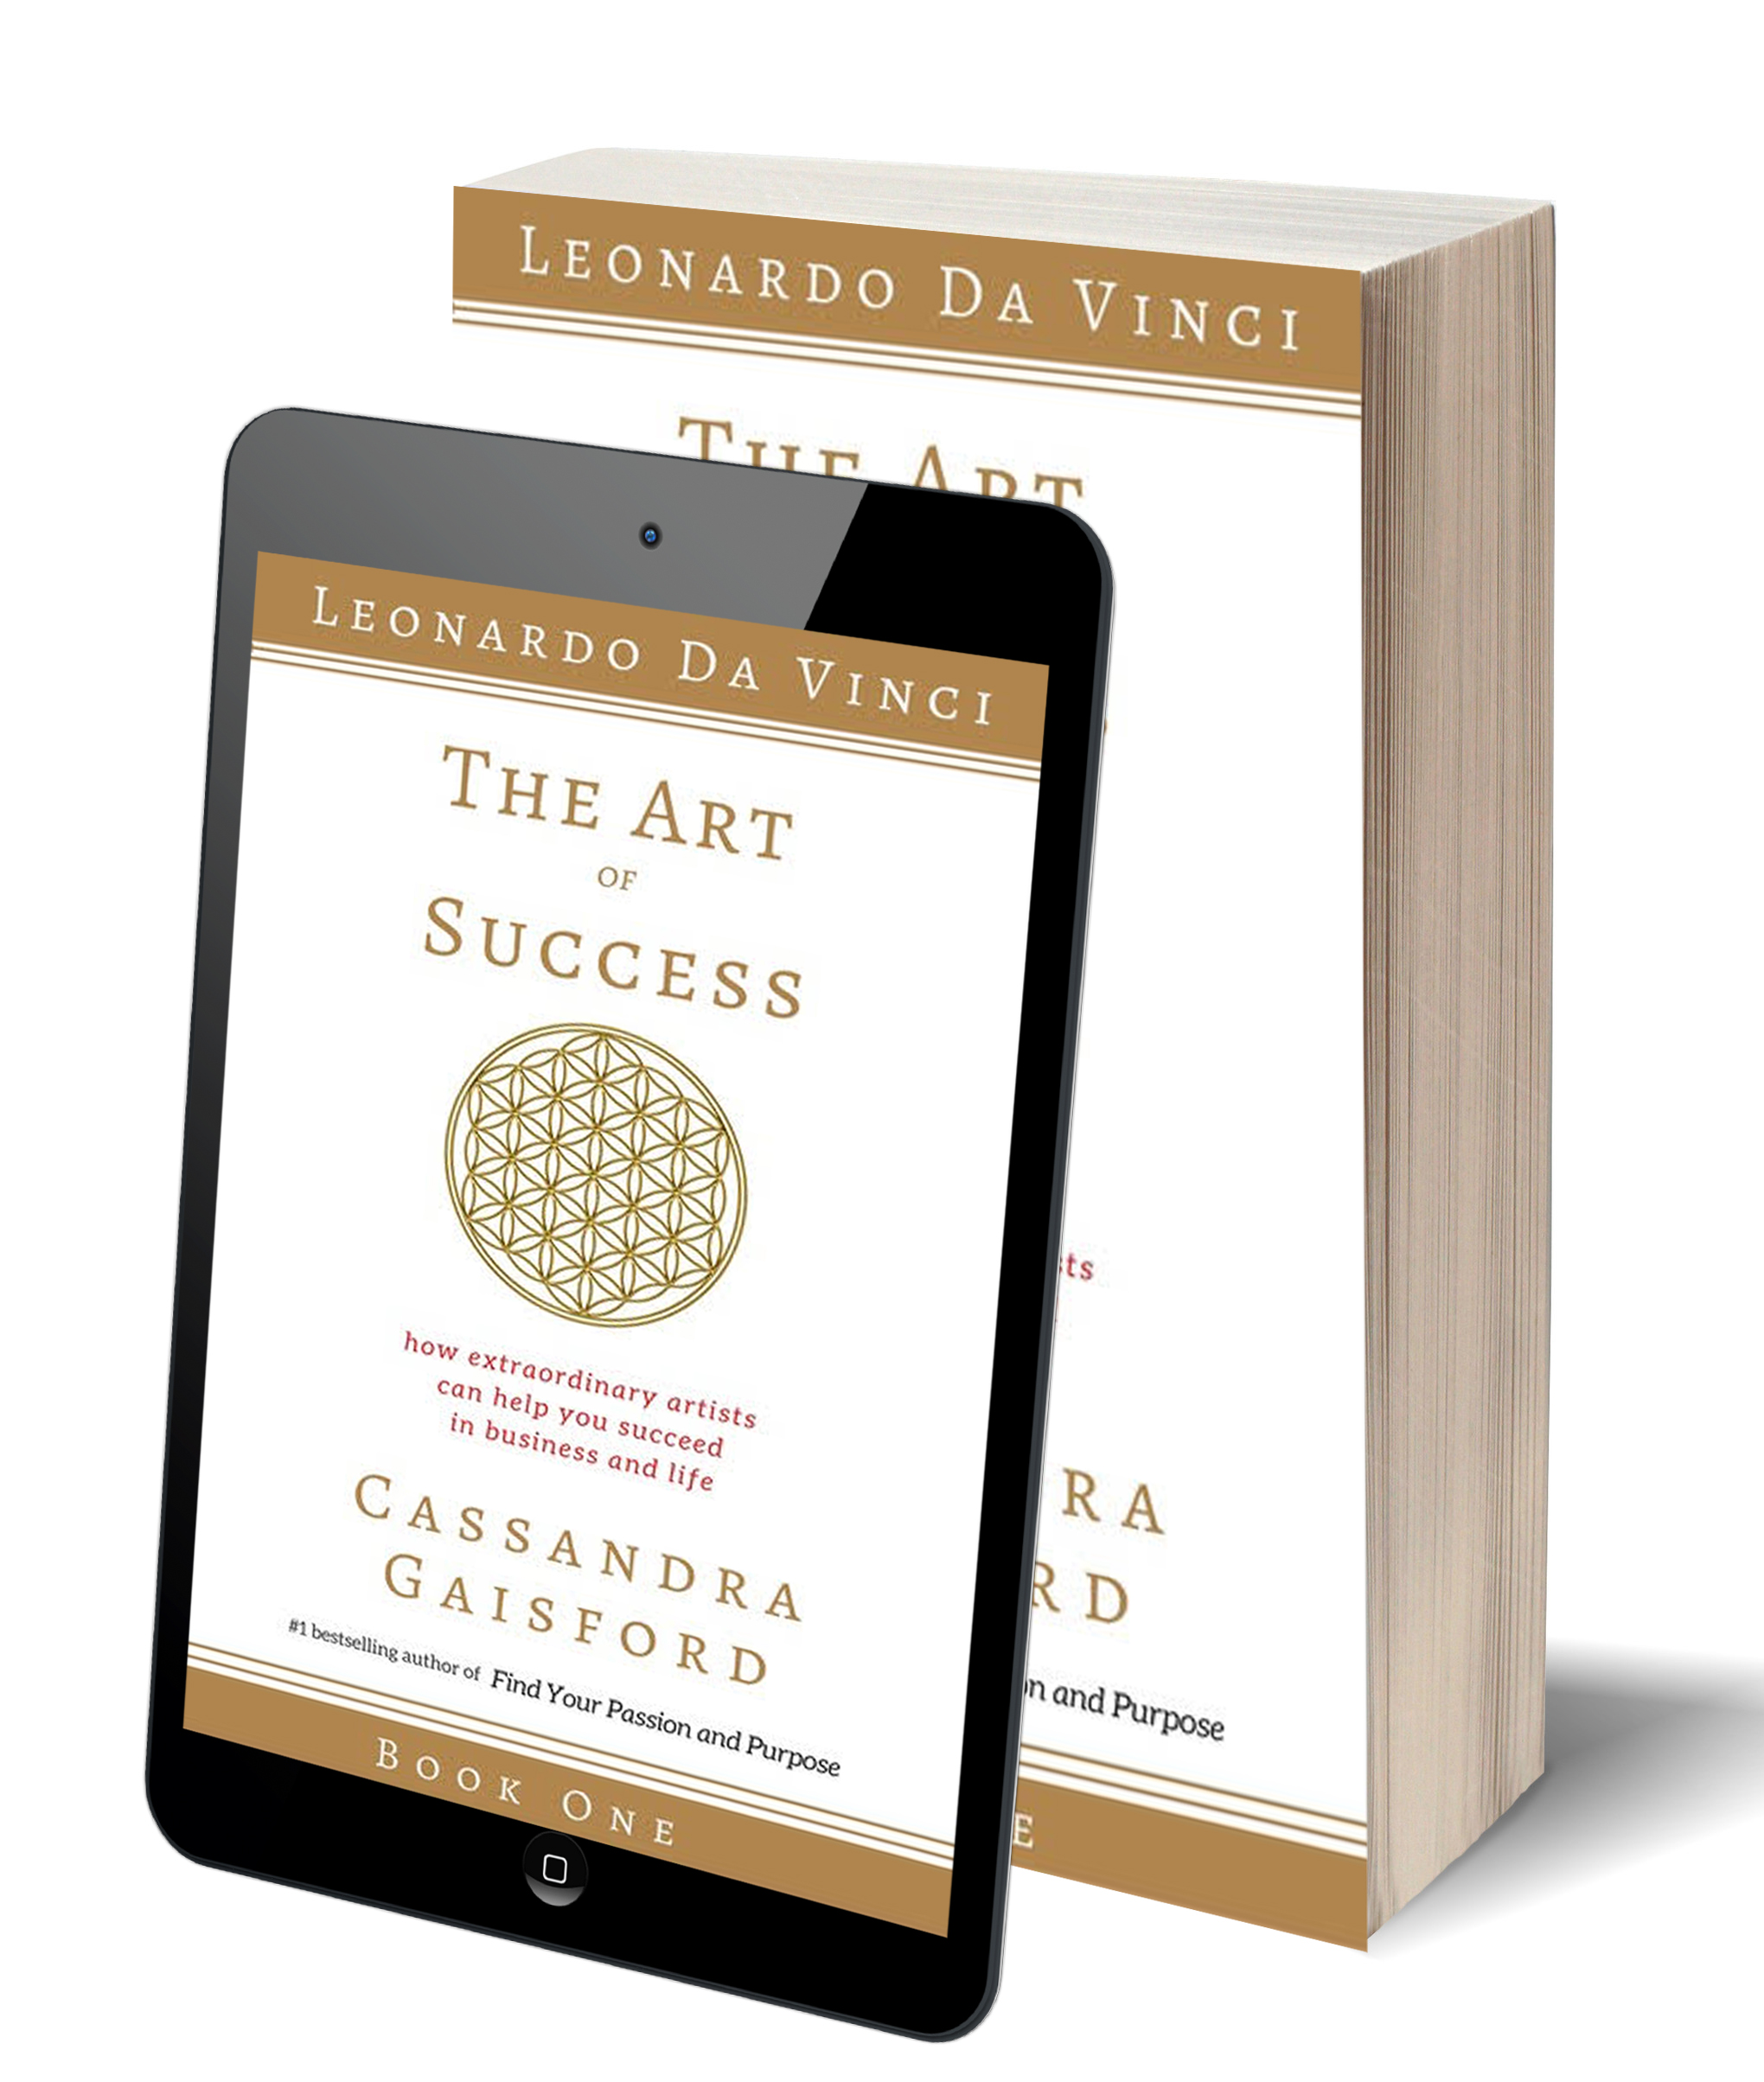 cassandra gaisford define success on your own terms overcome seemingly insurmountable obstacles learn how in cassandra s new 1 bestsellers the art of success available in